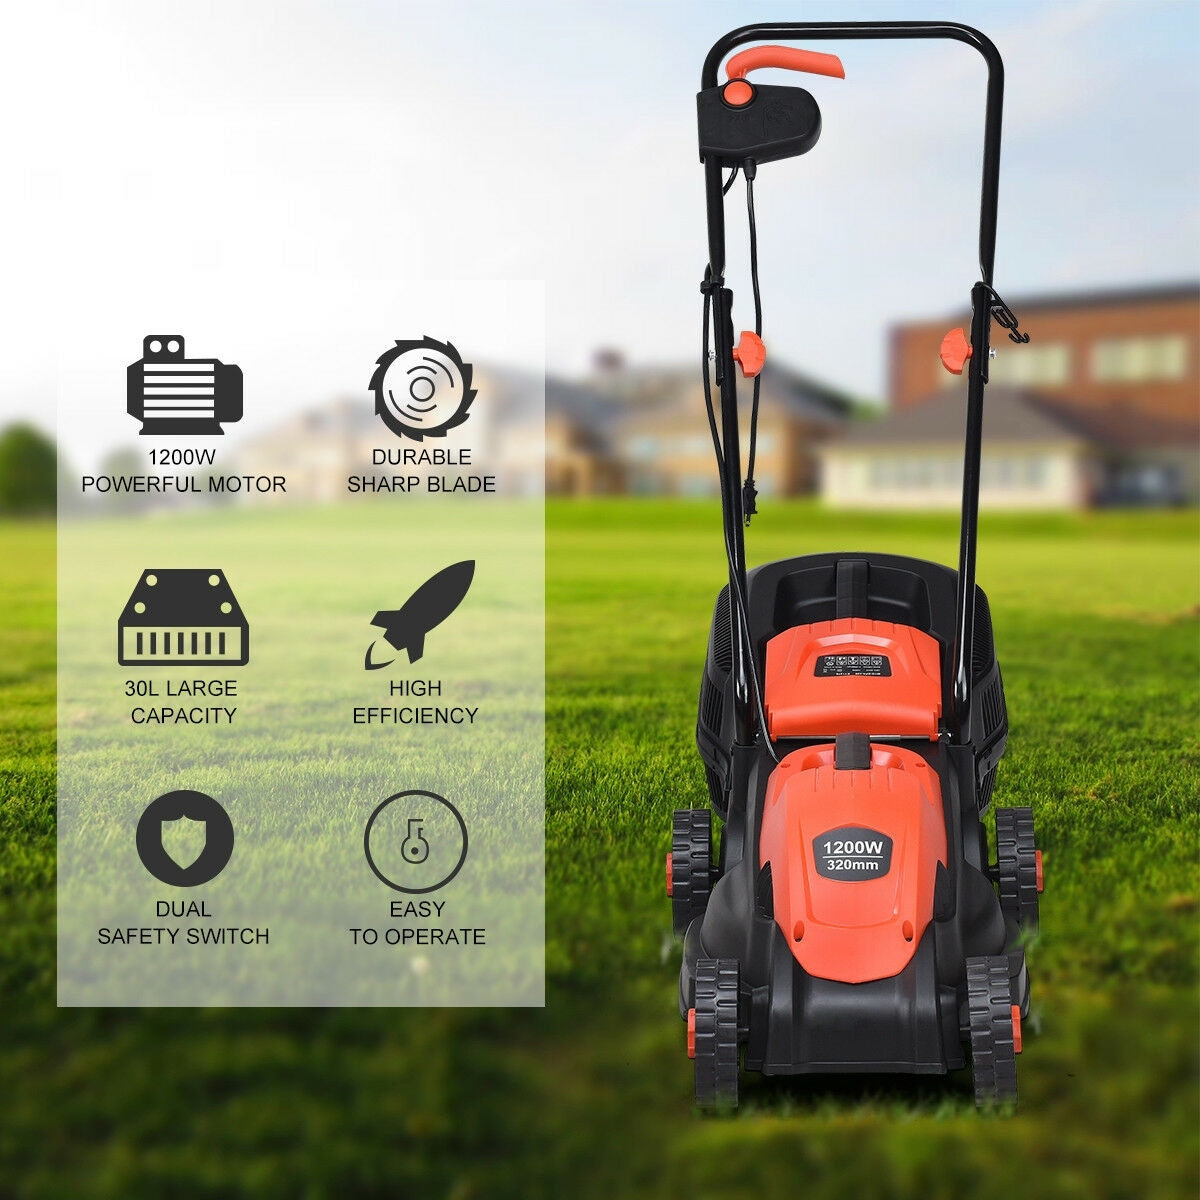 12 Amp 14-Inch Electric Push Lawn Corded Mower With Grass Bag Red